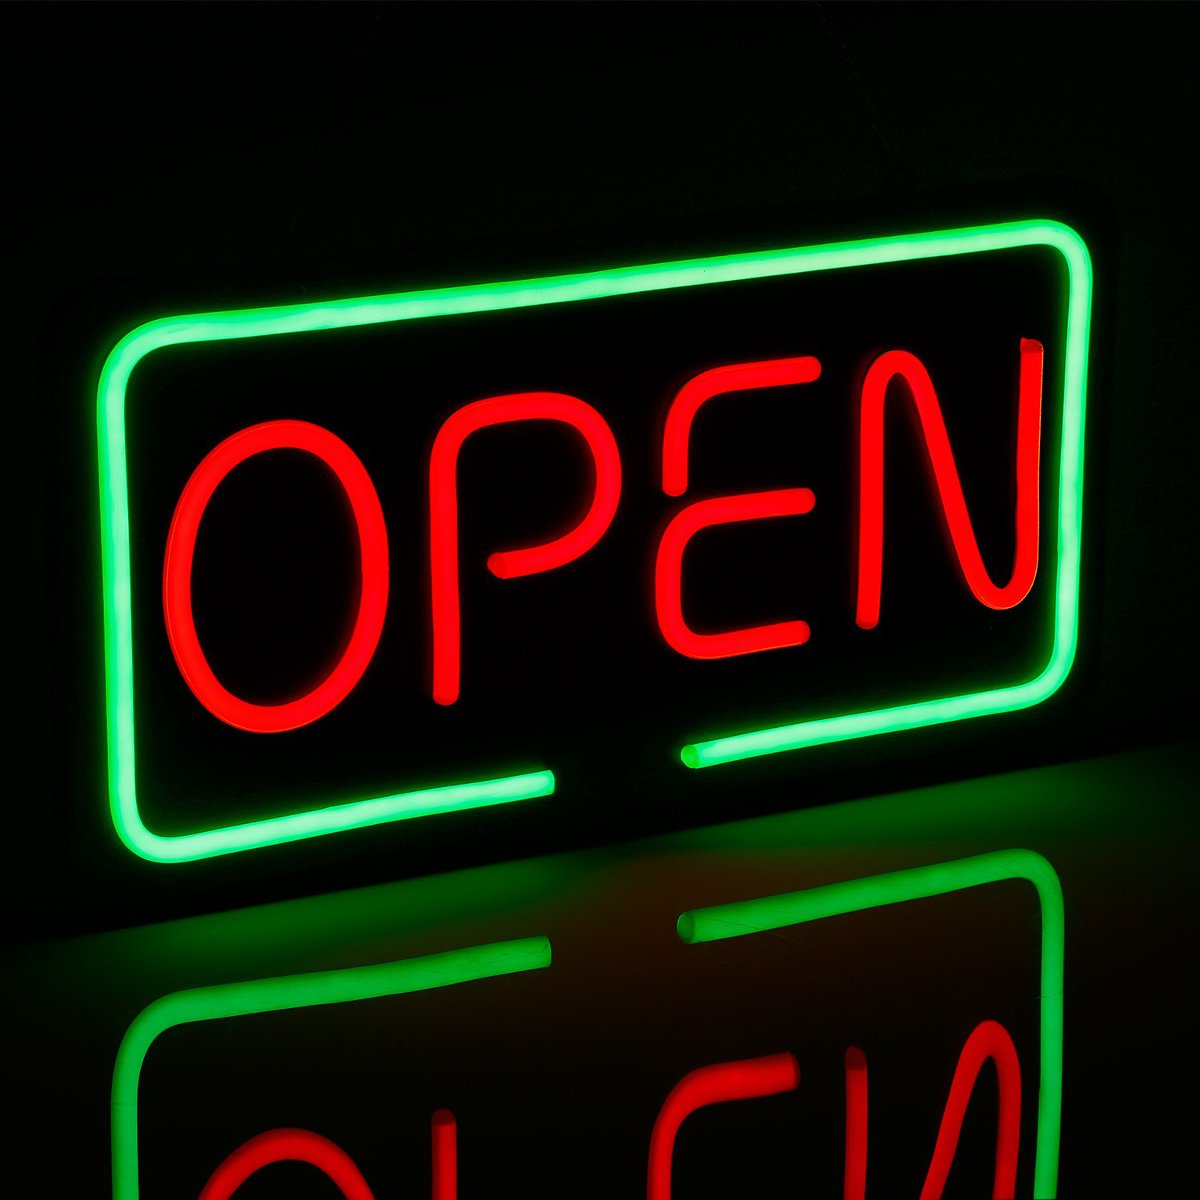 LED OPEN Neon Sign Light Hanging Bar Party Store Visual Artwork Lamp Decoration Neon Light Board 50X25cm Commercial Lighting